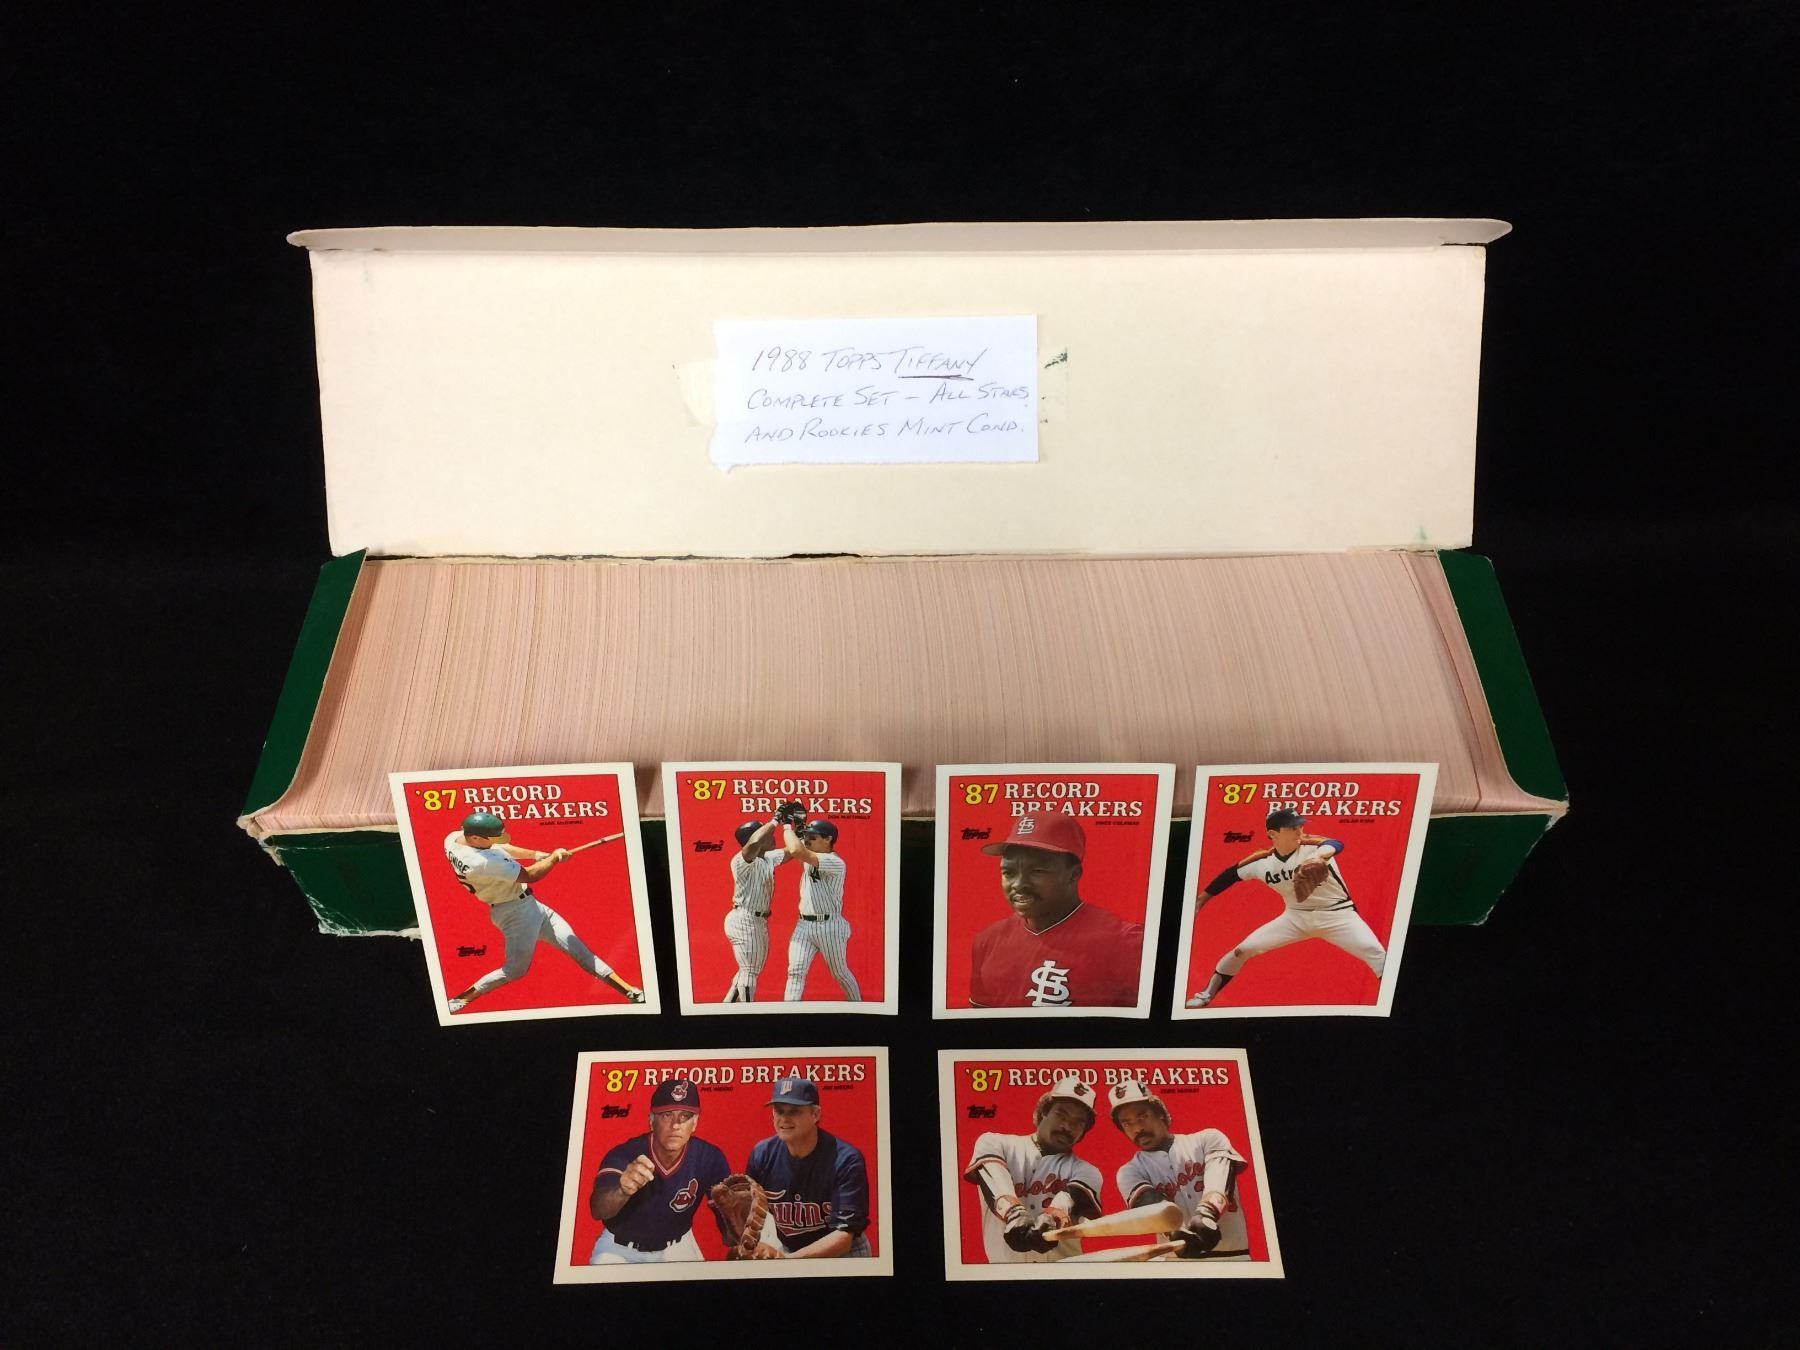 1988 Topps Tiffany Baseball Cards Complete Set All Stars Rookies Mint Condition